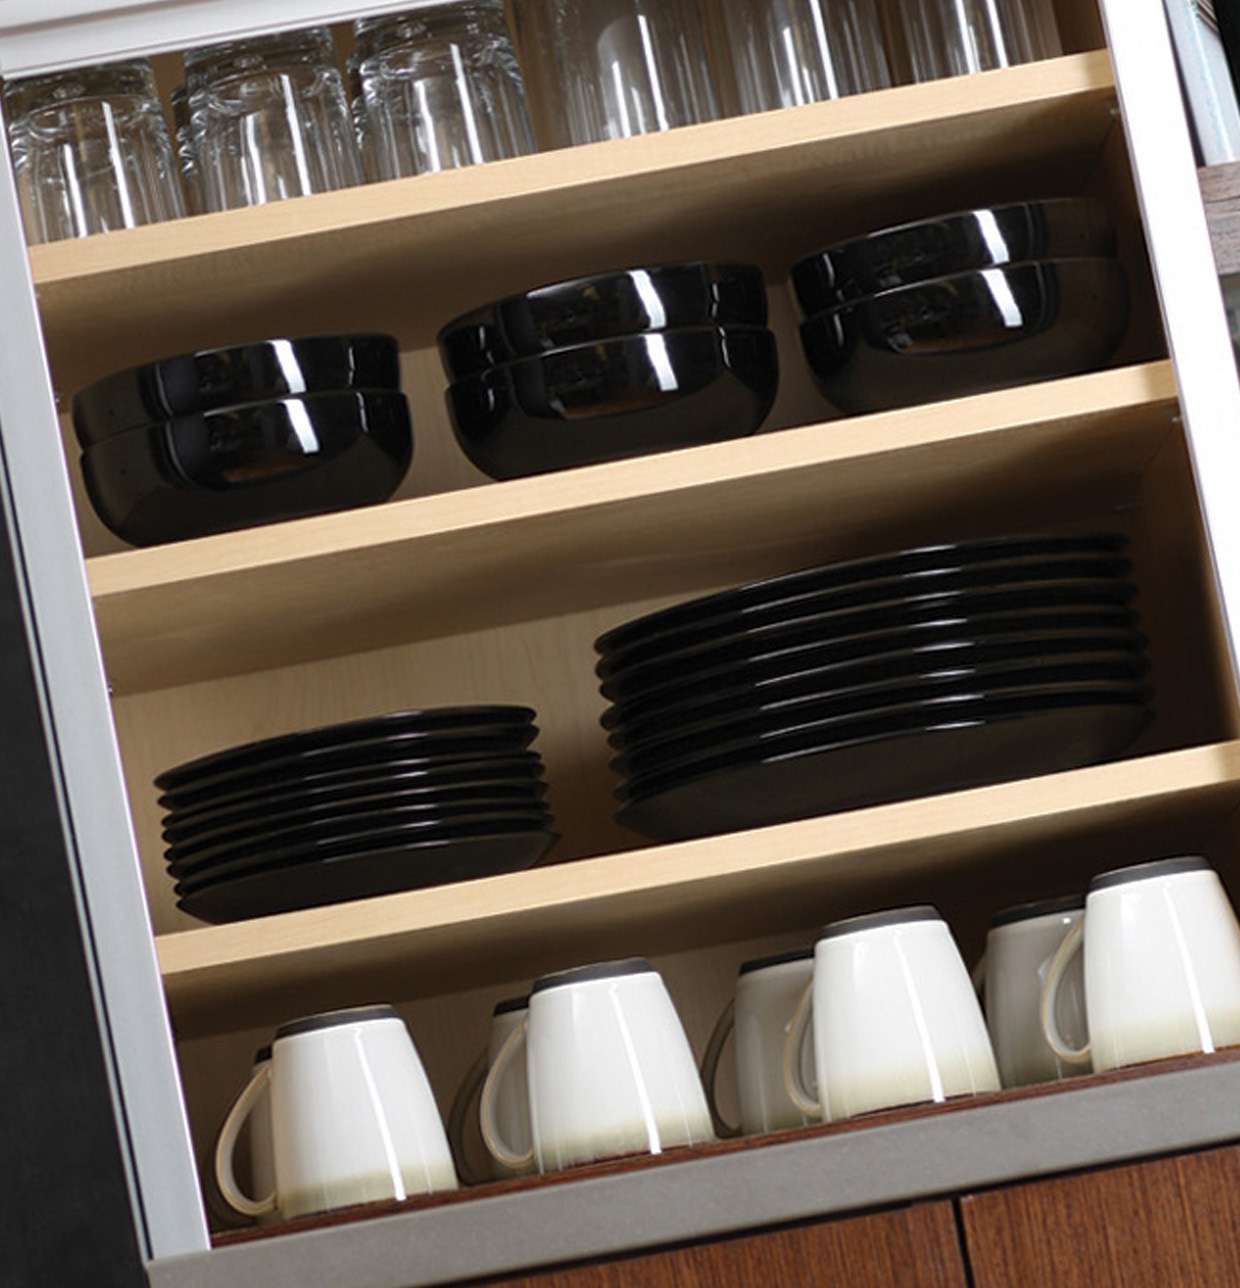 Wall Appliance Cabinet Organized for Dishware